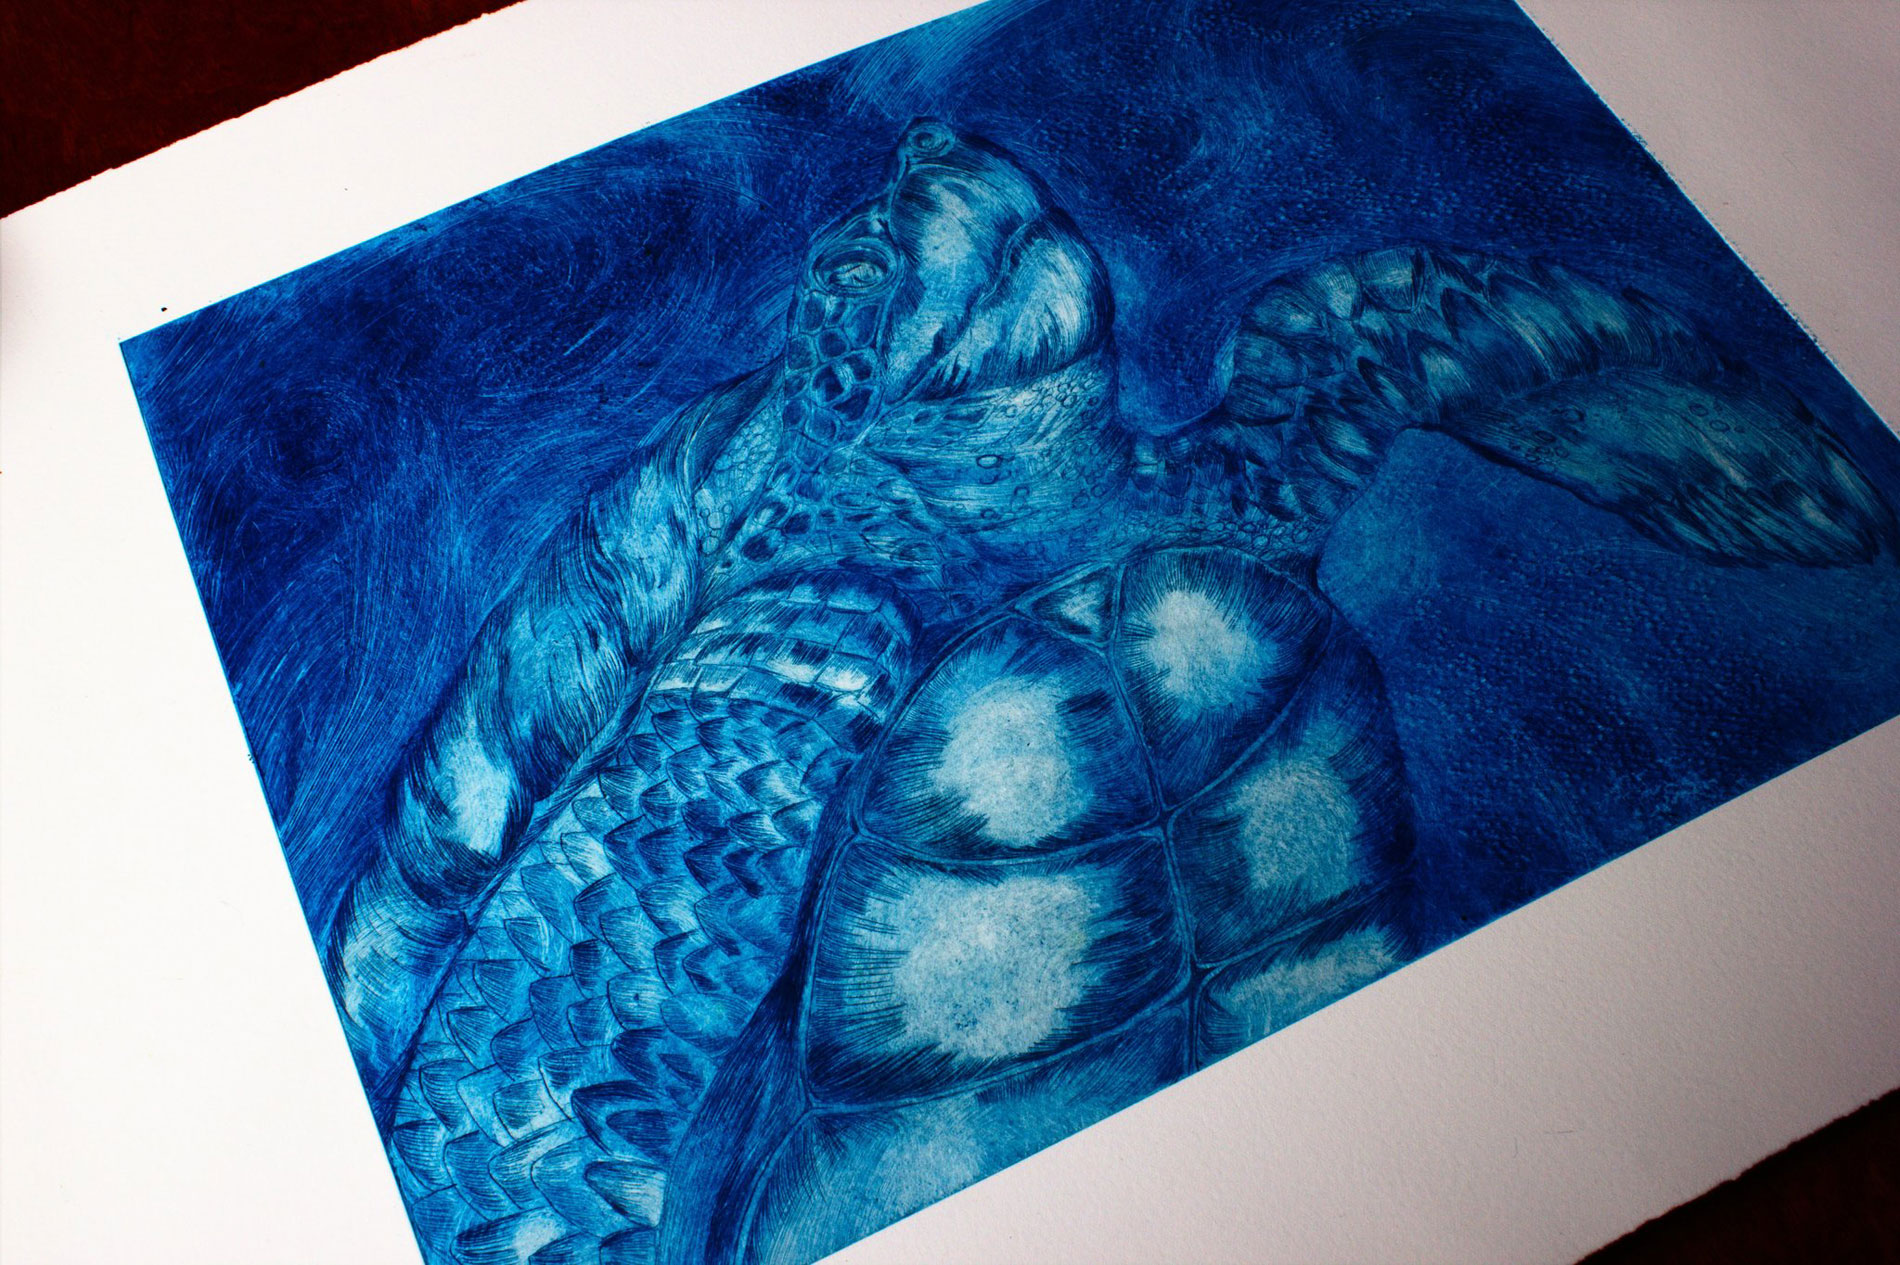 Blue turtle lithographic print